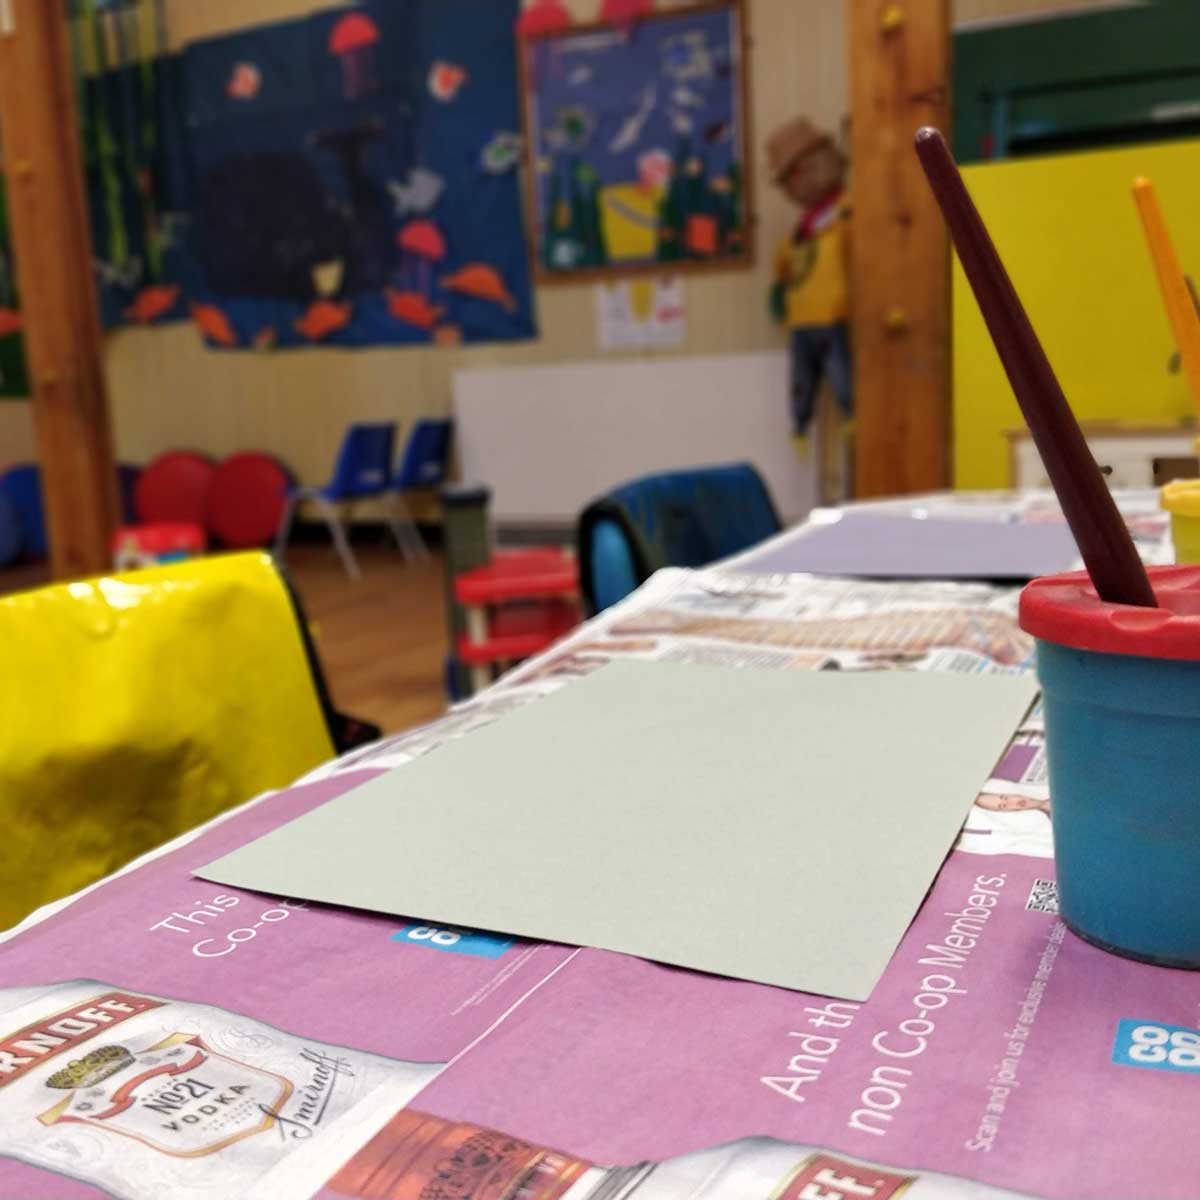 Painting items on a table at Rottingdean Whiteway Pre-School